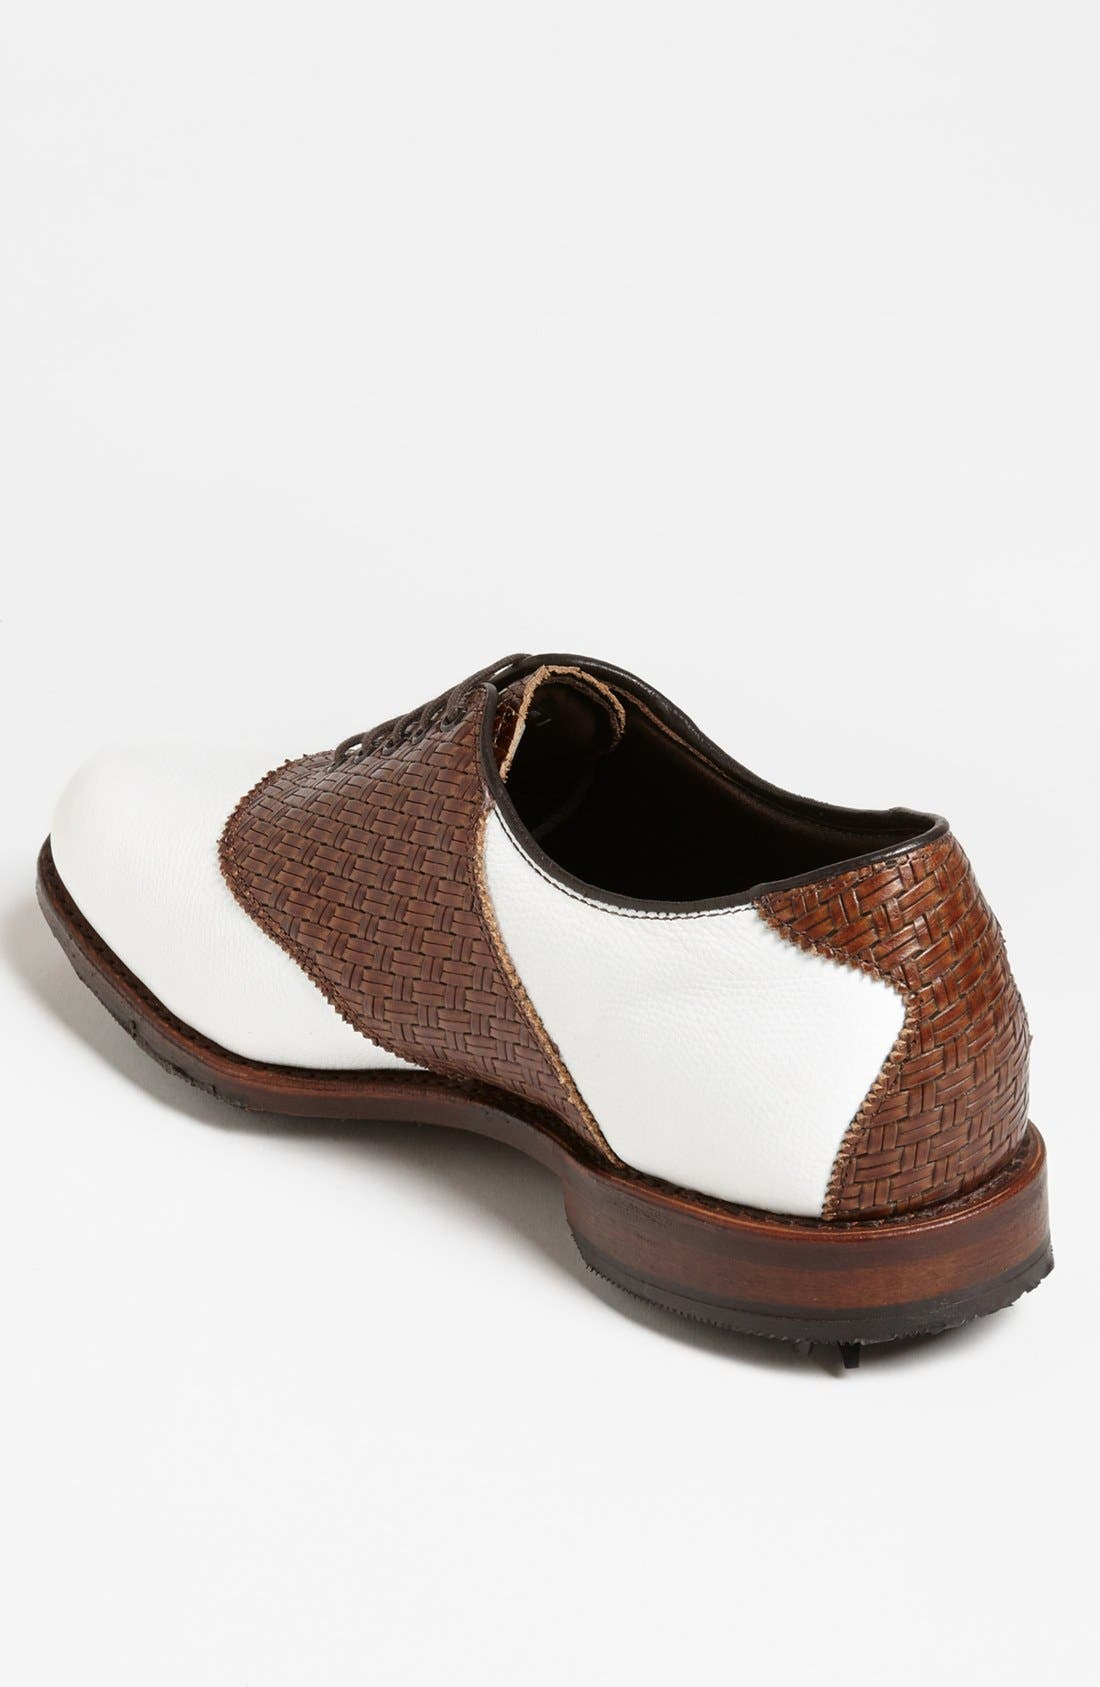 Alternate Image 2  - Allen Edmonds 'Redan' Golf Shoe (Men)